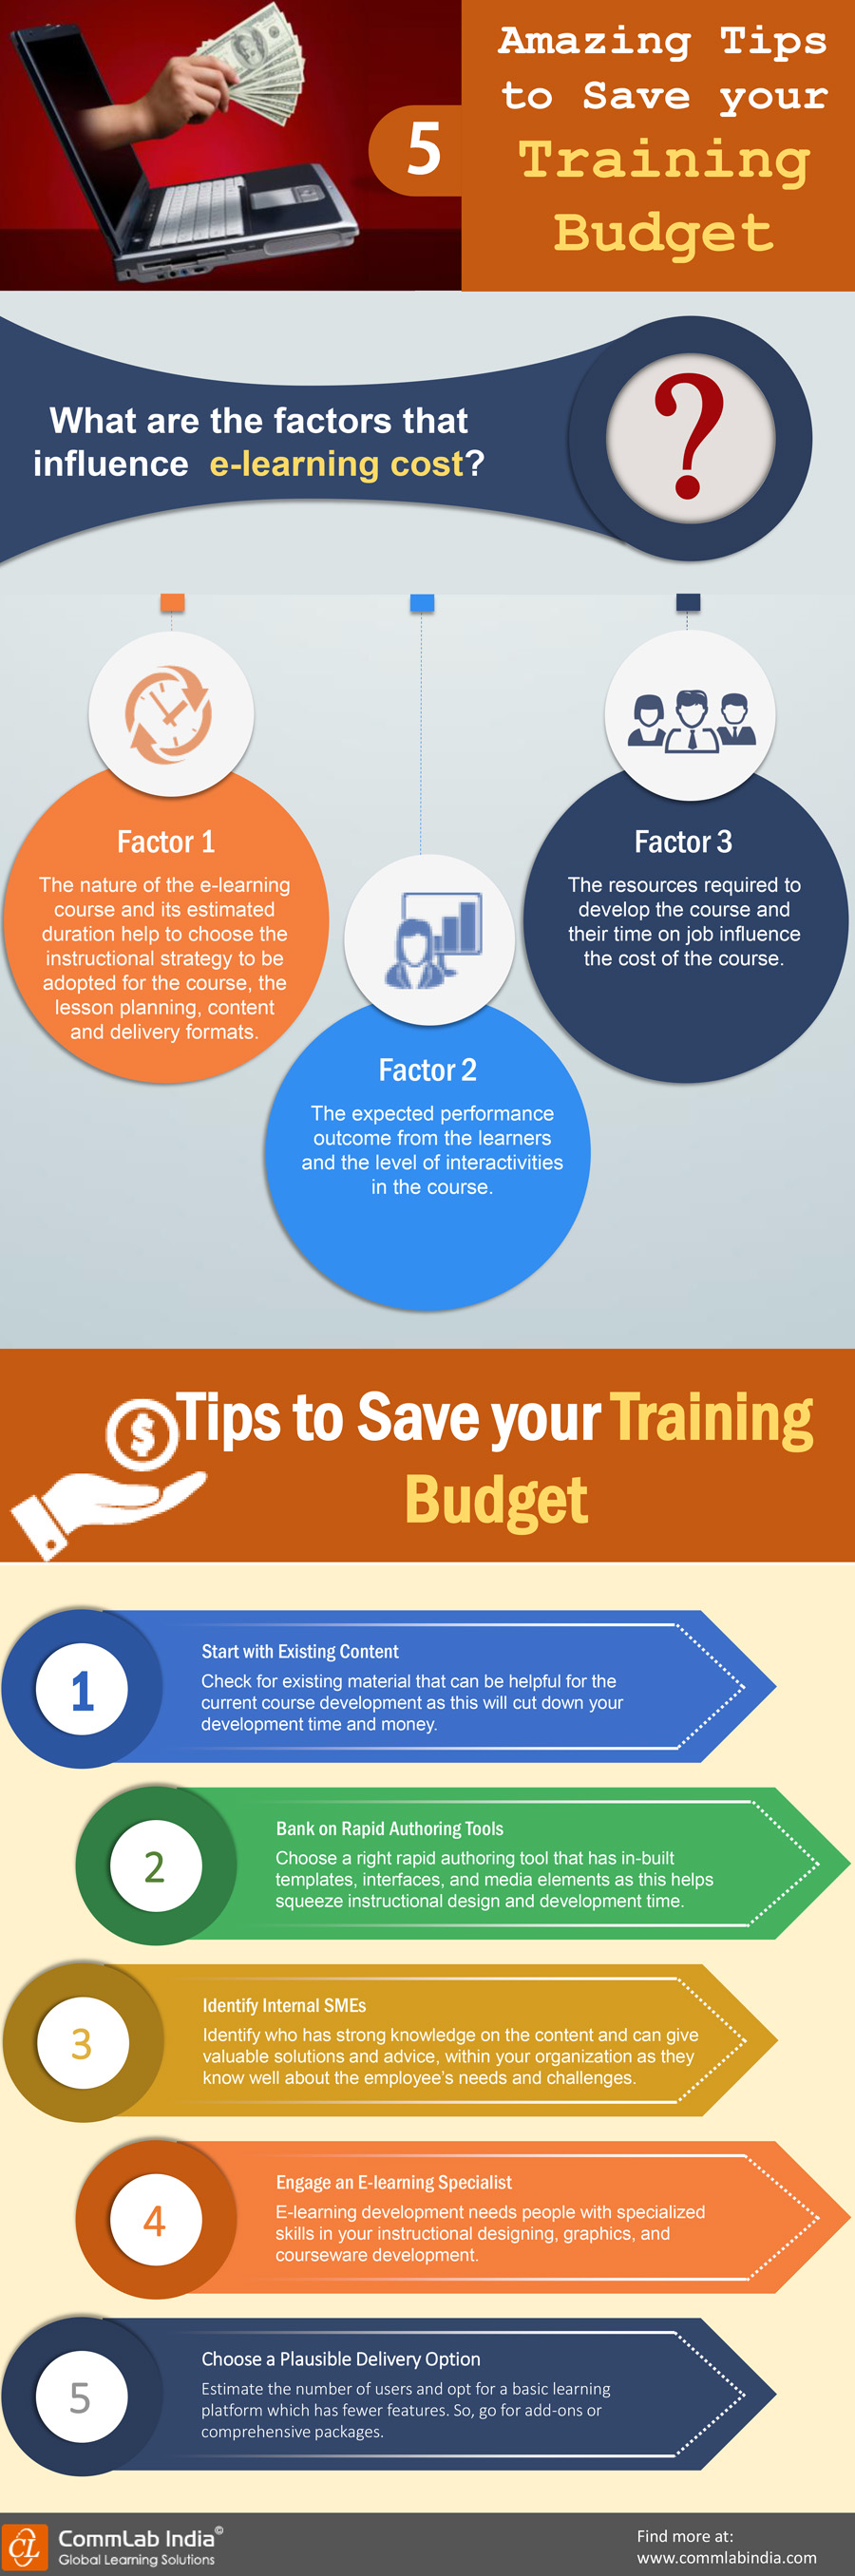 5 Amazing Tips to Save Your Training Budget [Infographic]